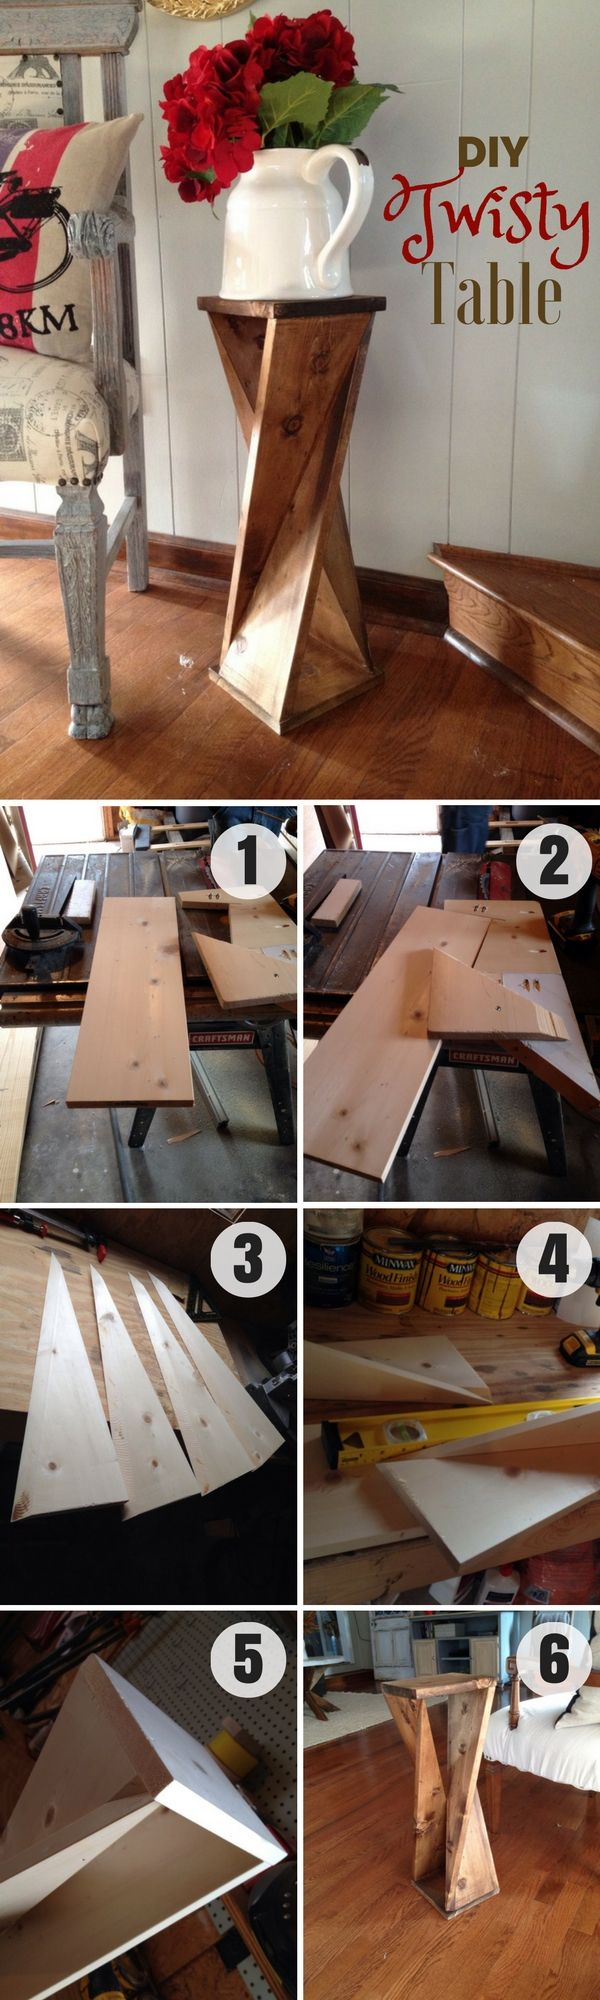 18 Amazing Easy Diy Wood Craft Project Ideas For Home Decor